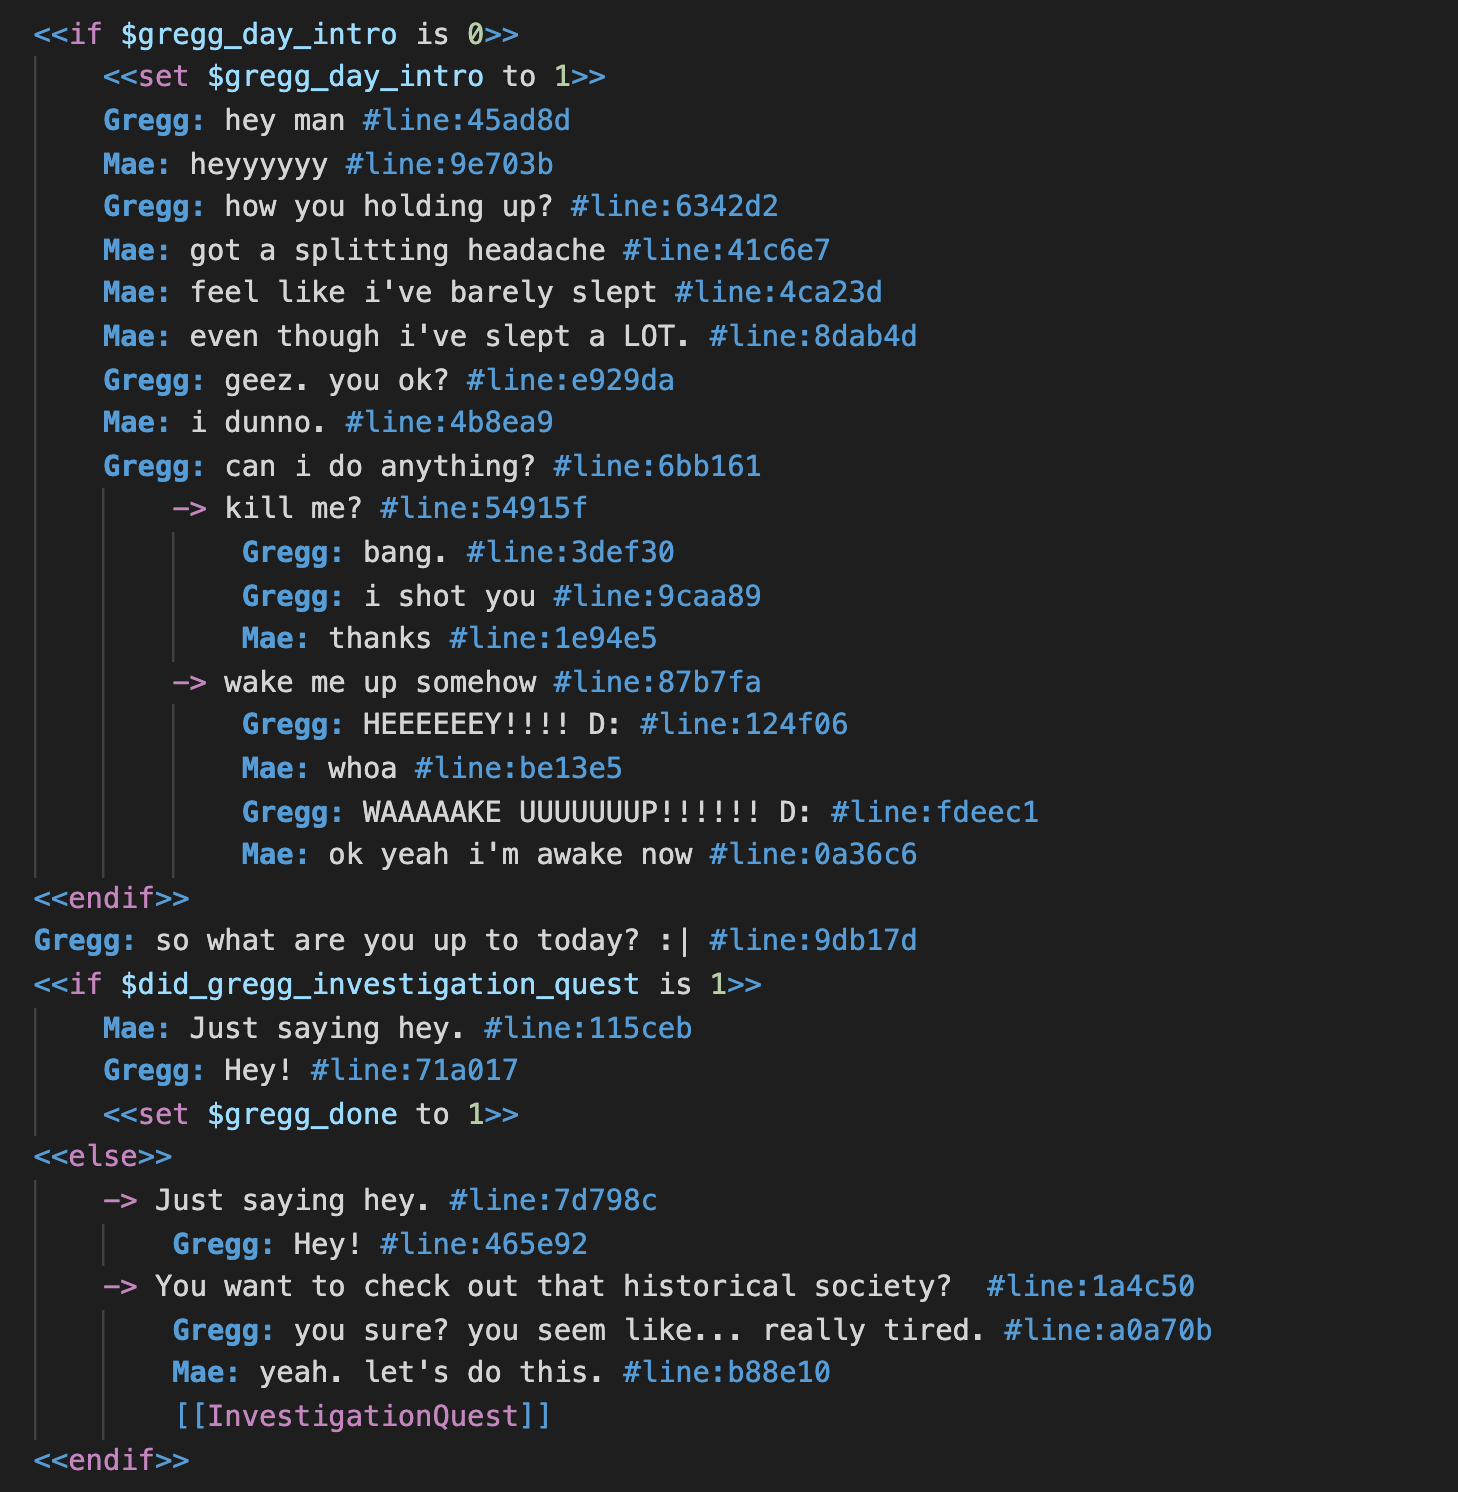 Lines of code that appear similar to a screenplay of a casual conversation between two characters